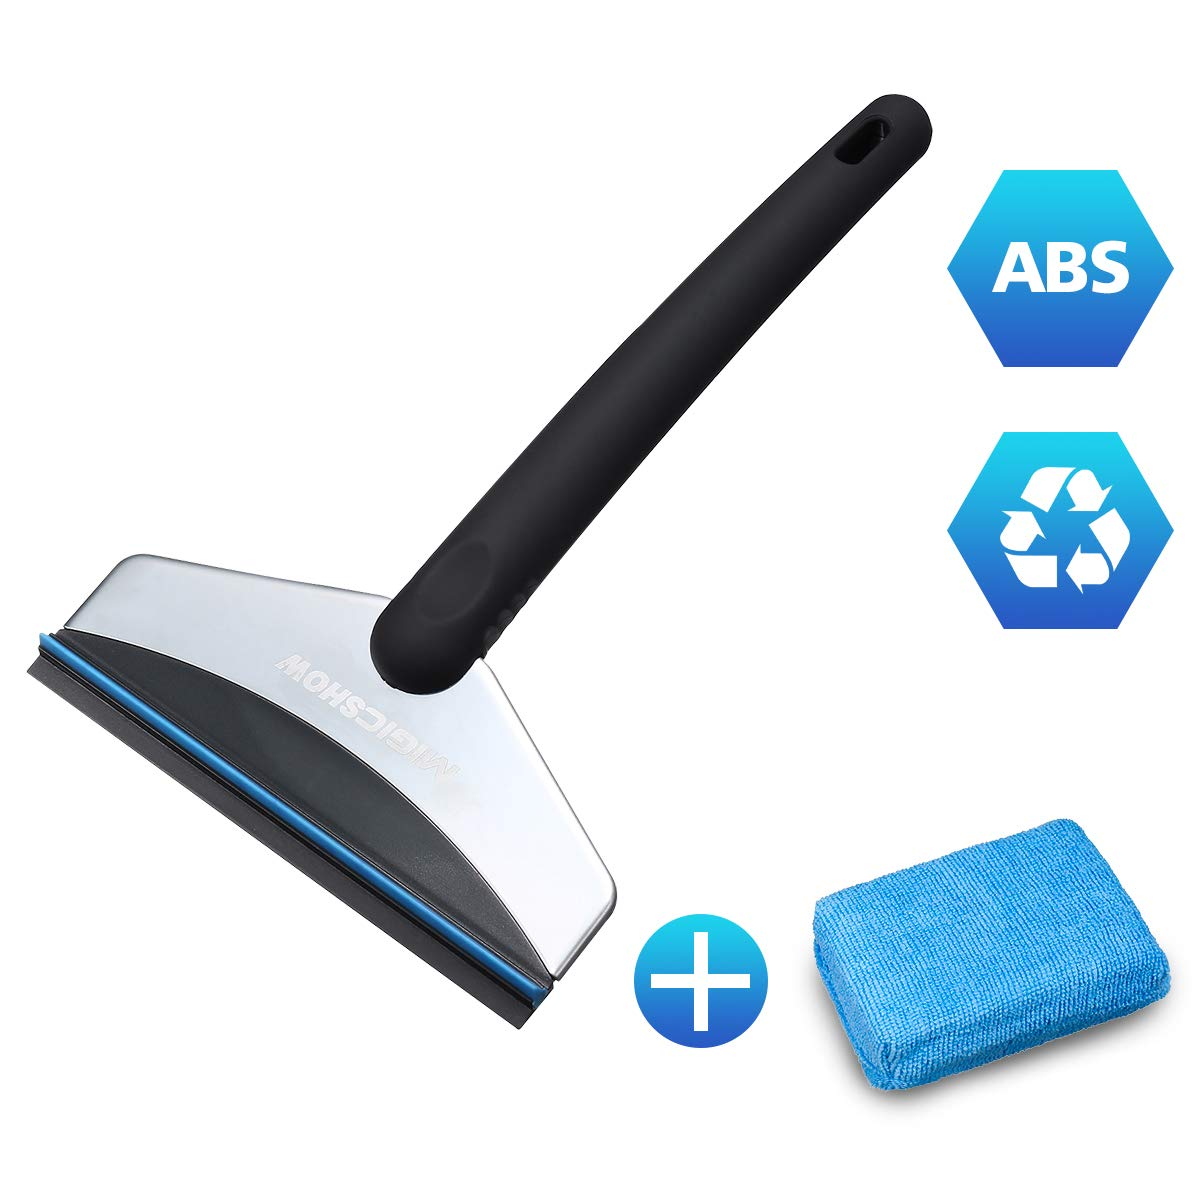 MIGICSHOW Ice Scraper for Cars, Windscreen Scraper Stainless Steel Snow Shovel windshield Scraper Snow Brush Grip with A 3CM Sponge For Car Van Scrape Ice From Windscreens And Side Windows With Ease MIGICSHOWyuhdhdjfhsja41